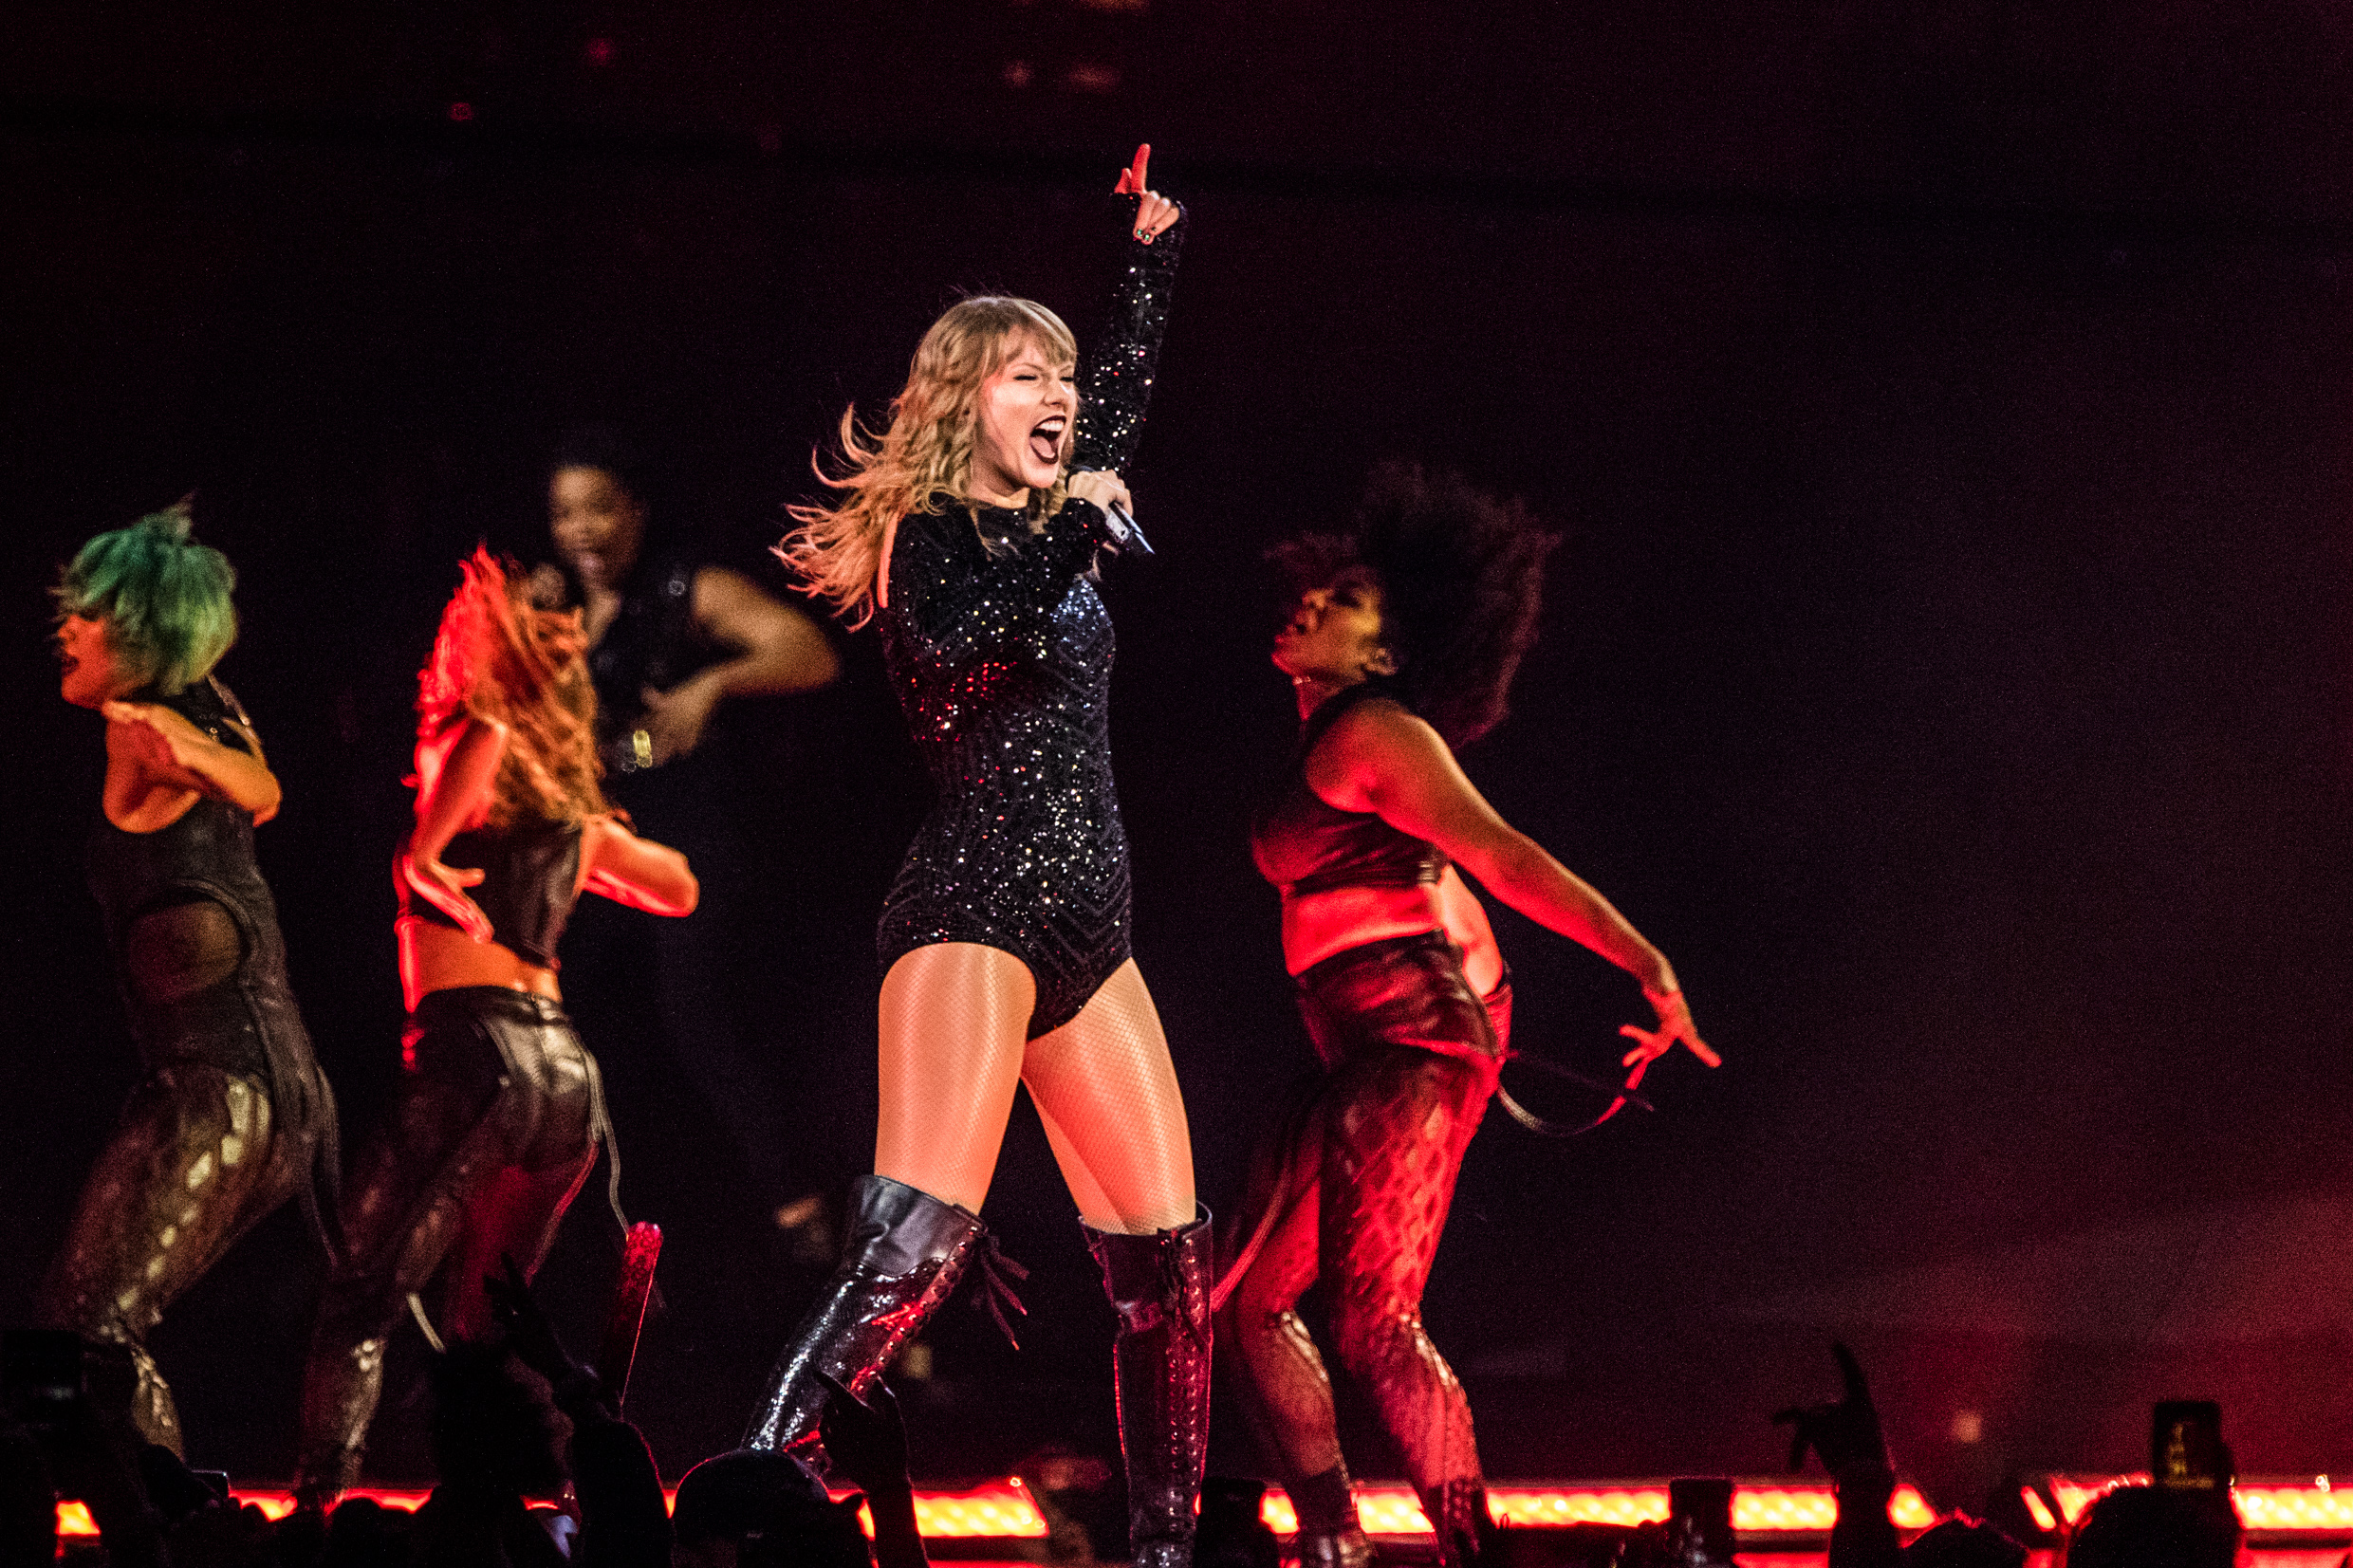 """Review - """"She is, after all, a mega pop star with evident mass marketing smarts and the musical talent to back it up."""""""